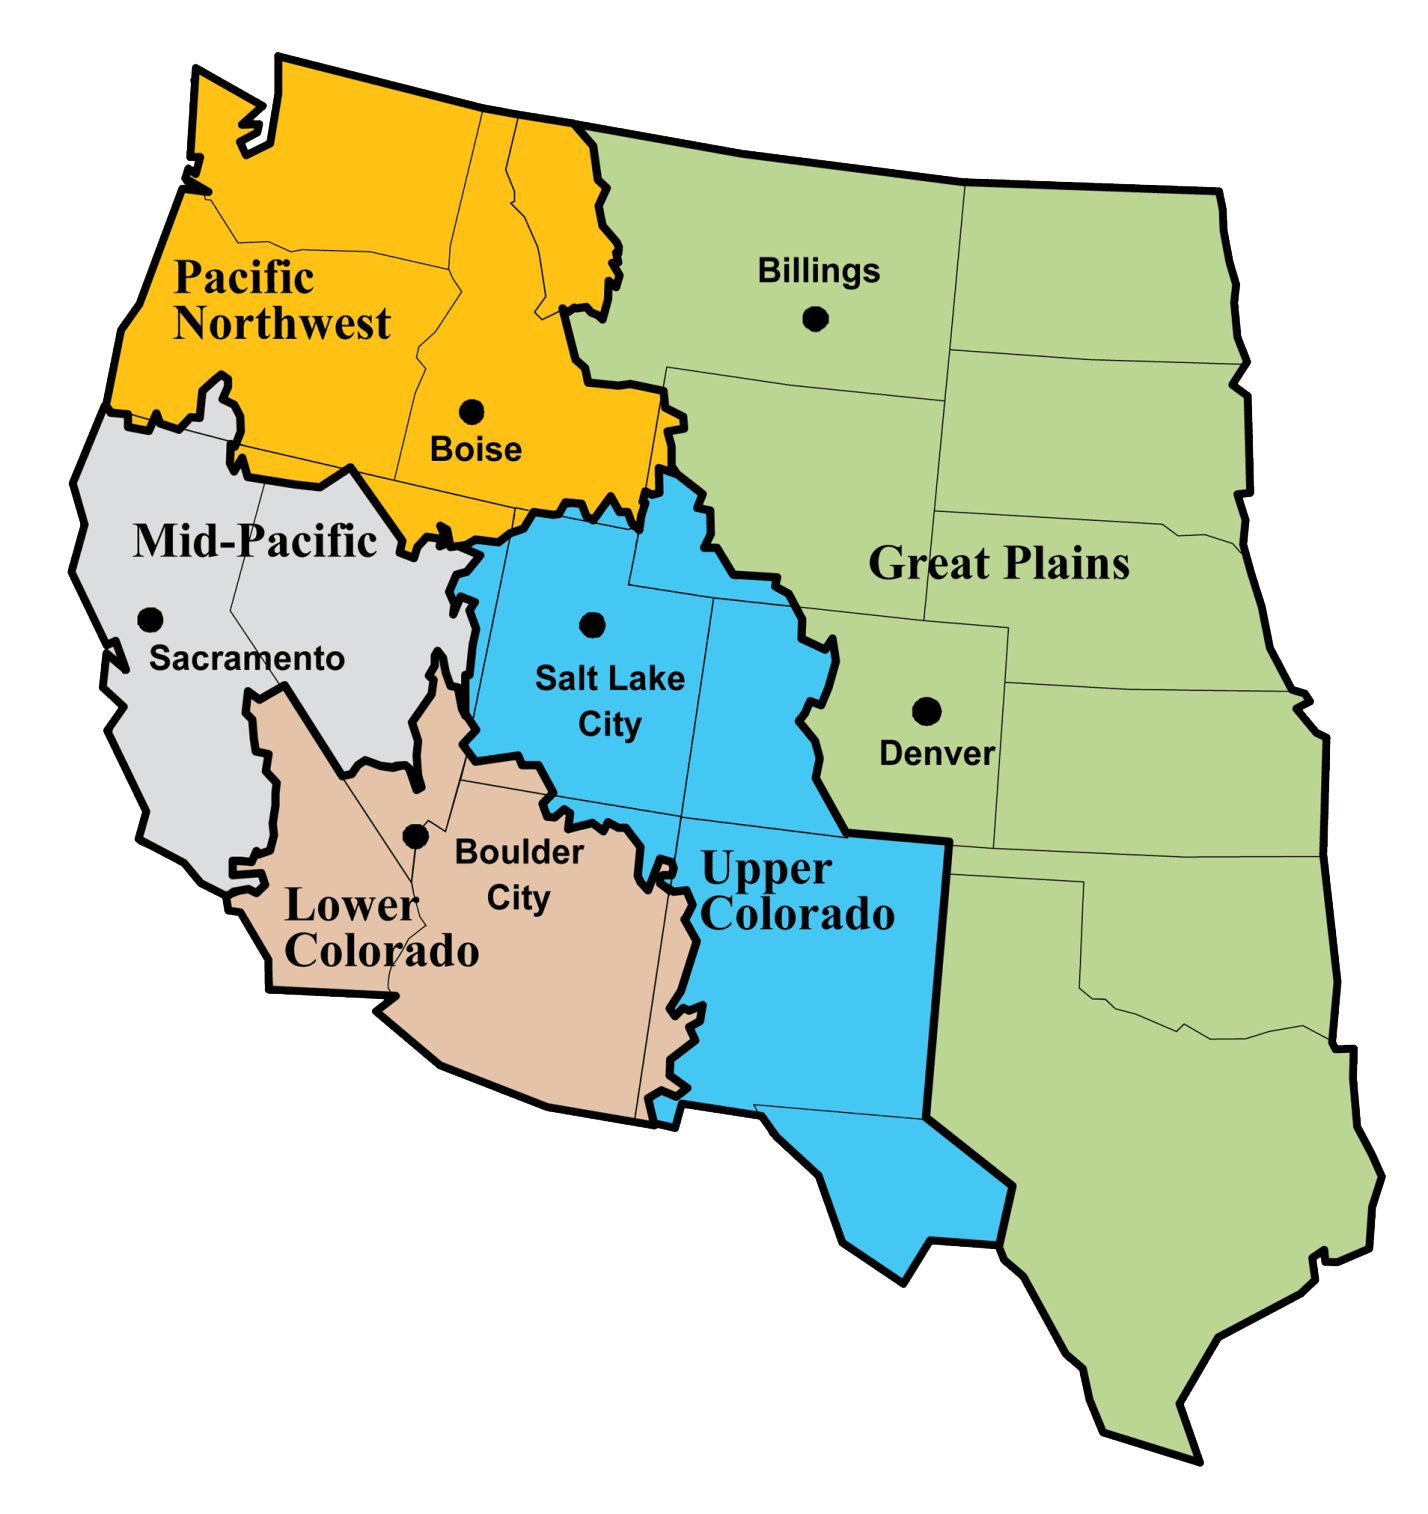 Fájl:Bureau of Reclamation regions.png